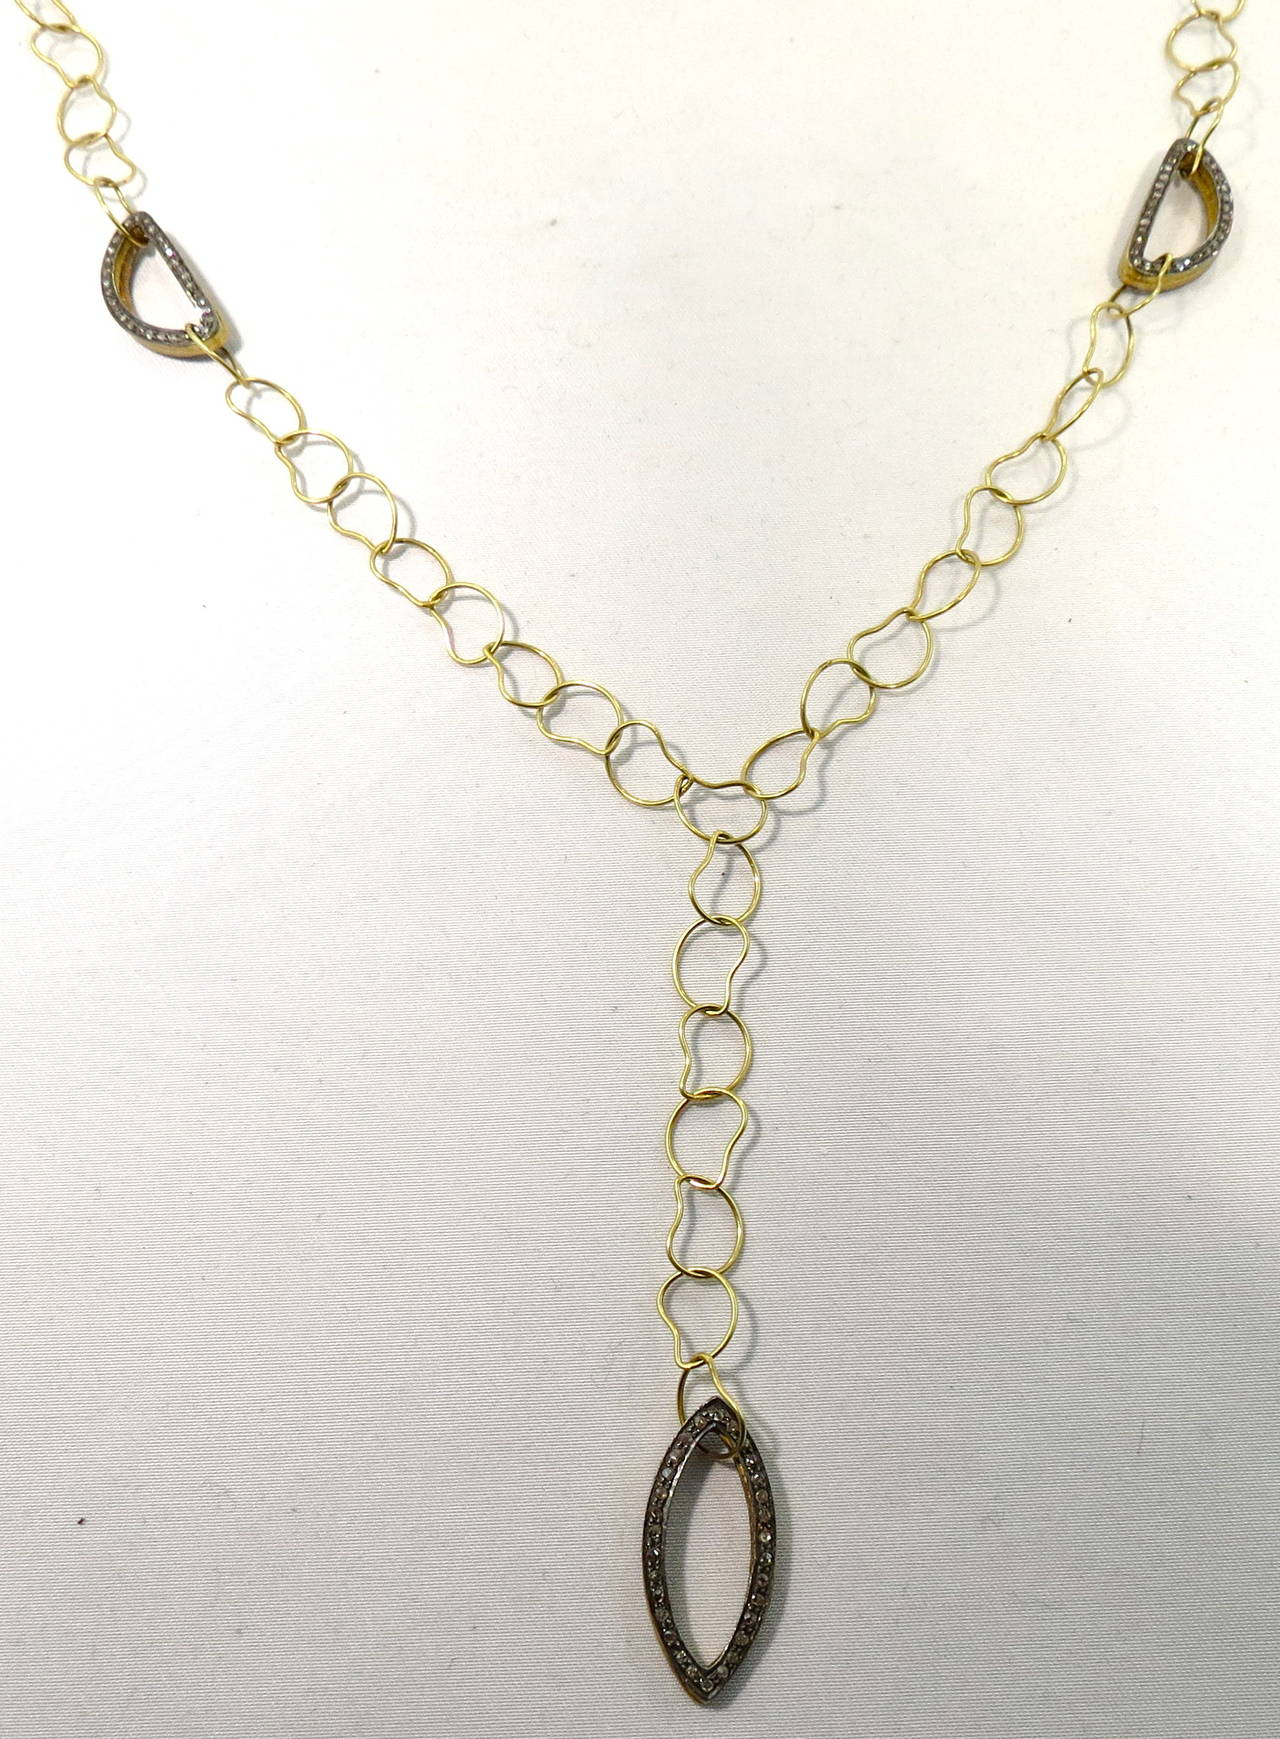 Jona Paisley 18 Karat Yellow Gold Diamond Necklace In New Condition For Sale In Torino, IT